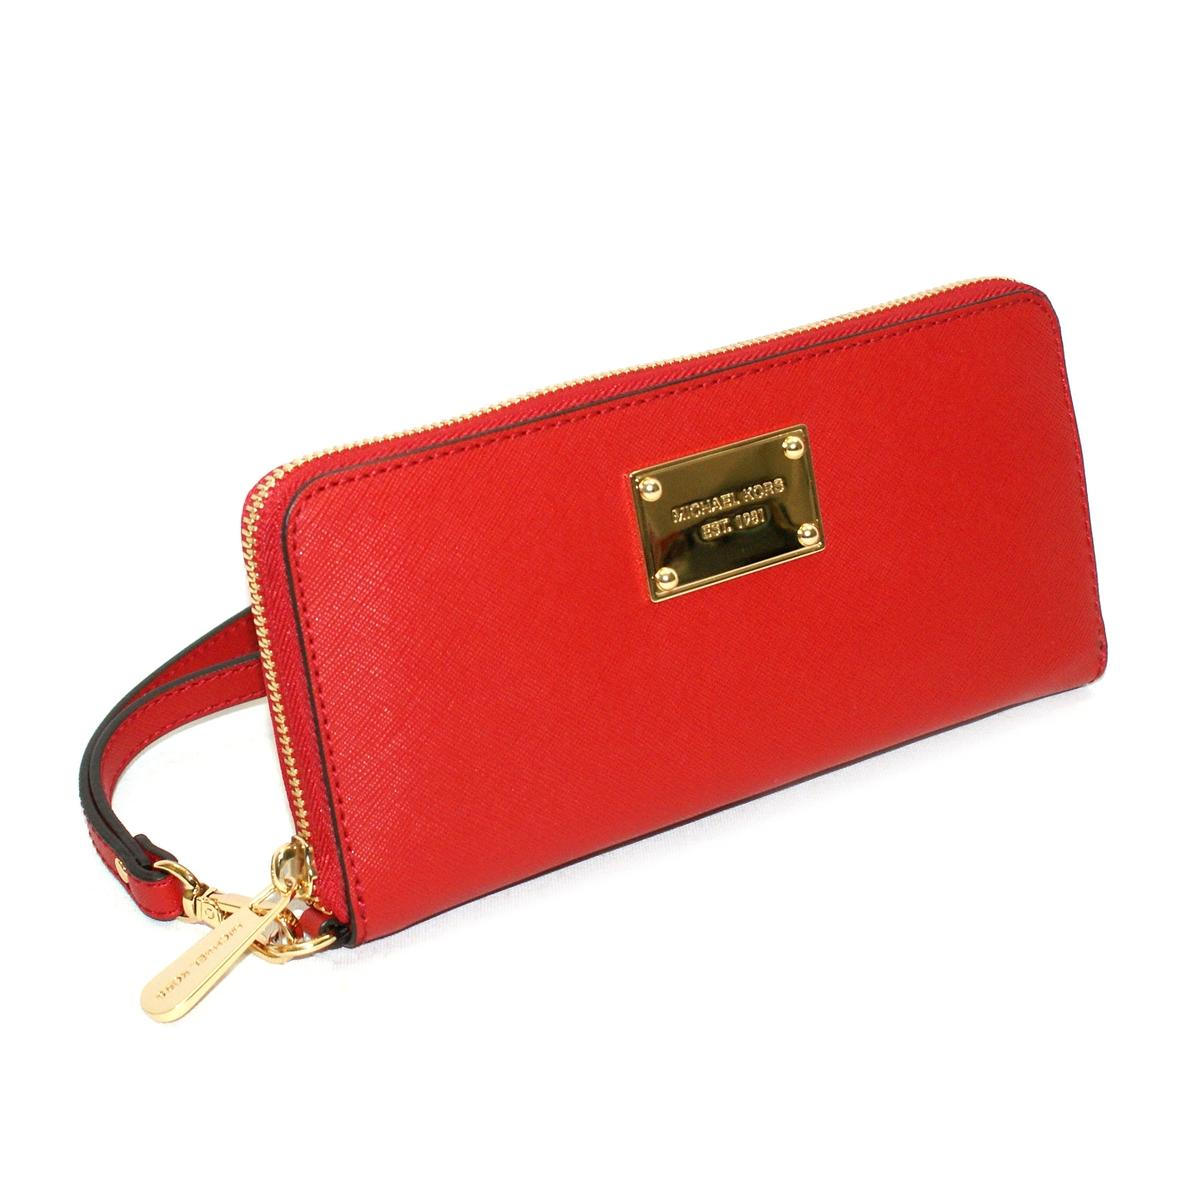 6be9680faa3b Buy red michael kors wristlet   OFF65% Discounted